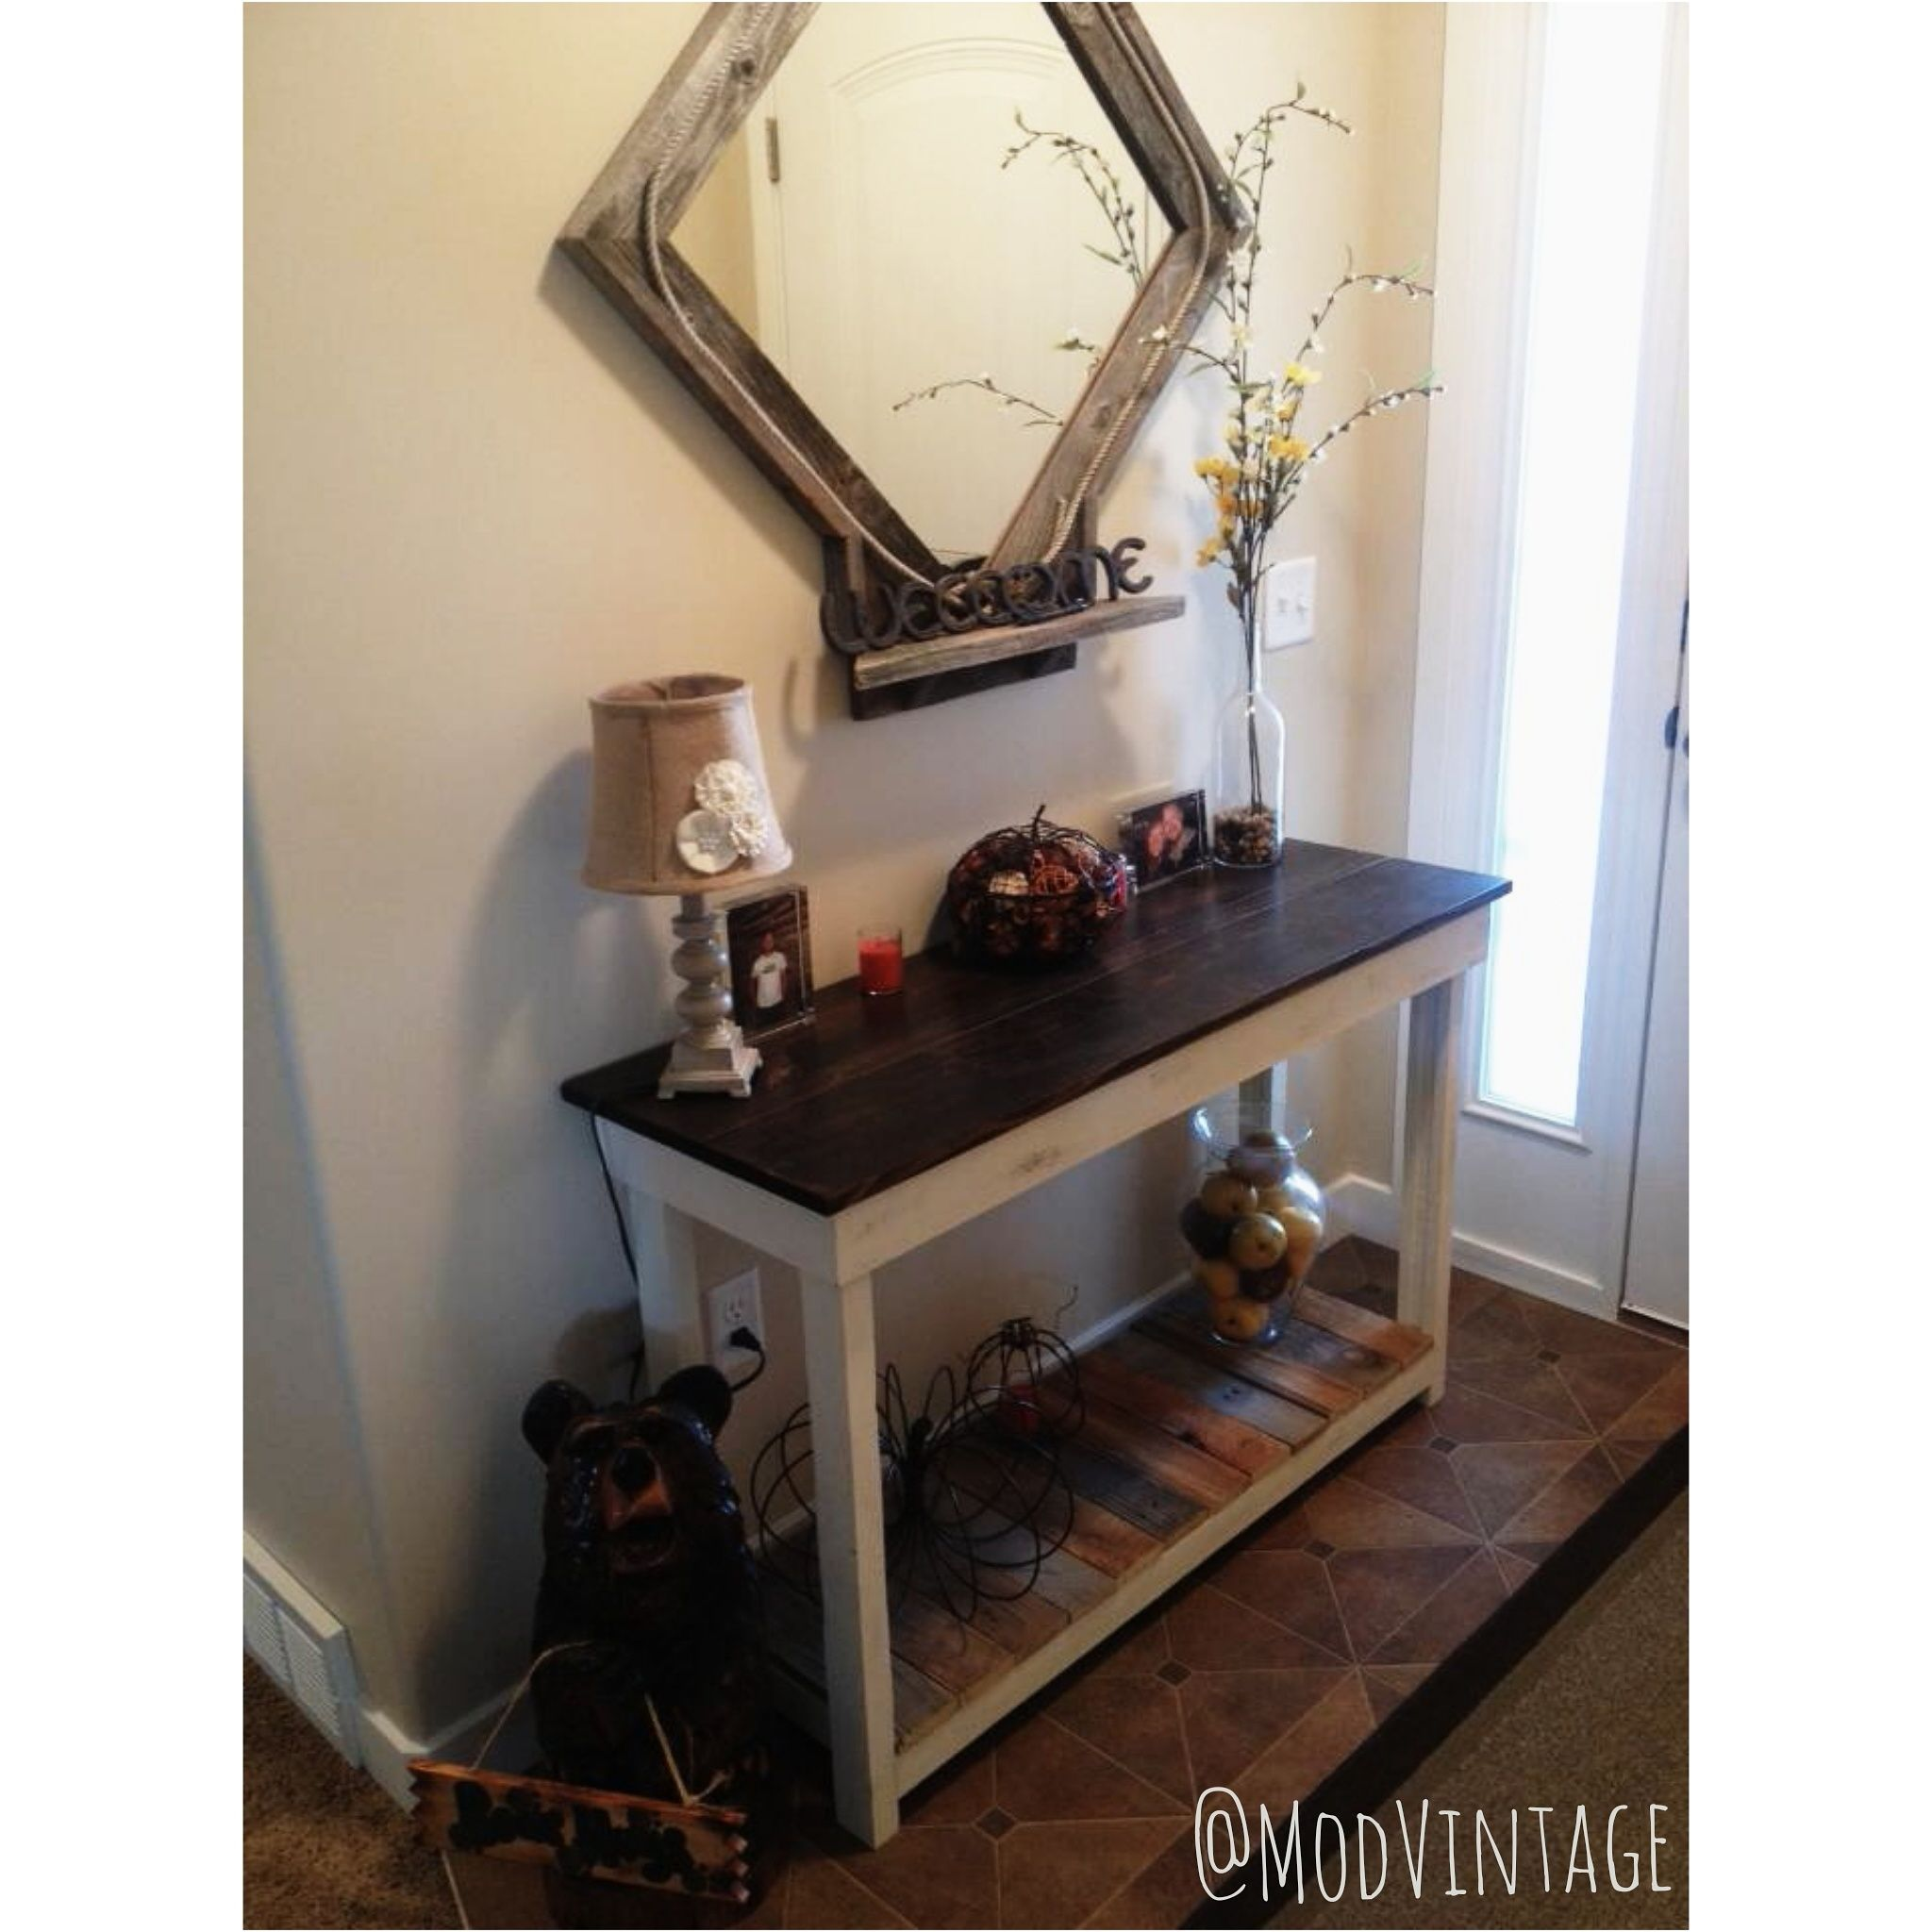 Classic ModVintage Farmhouse Entryway Table by @modvintage